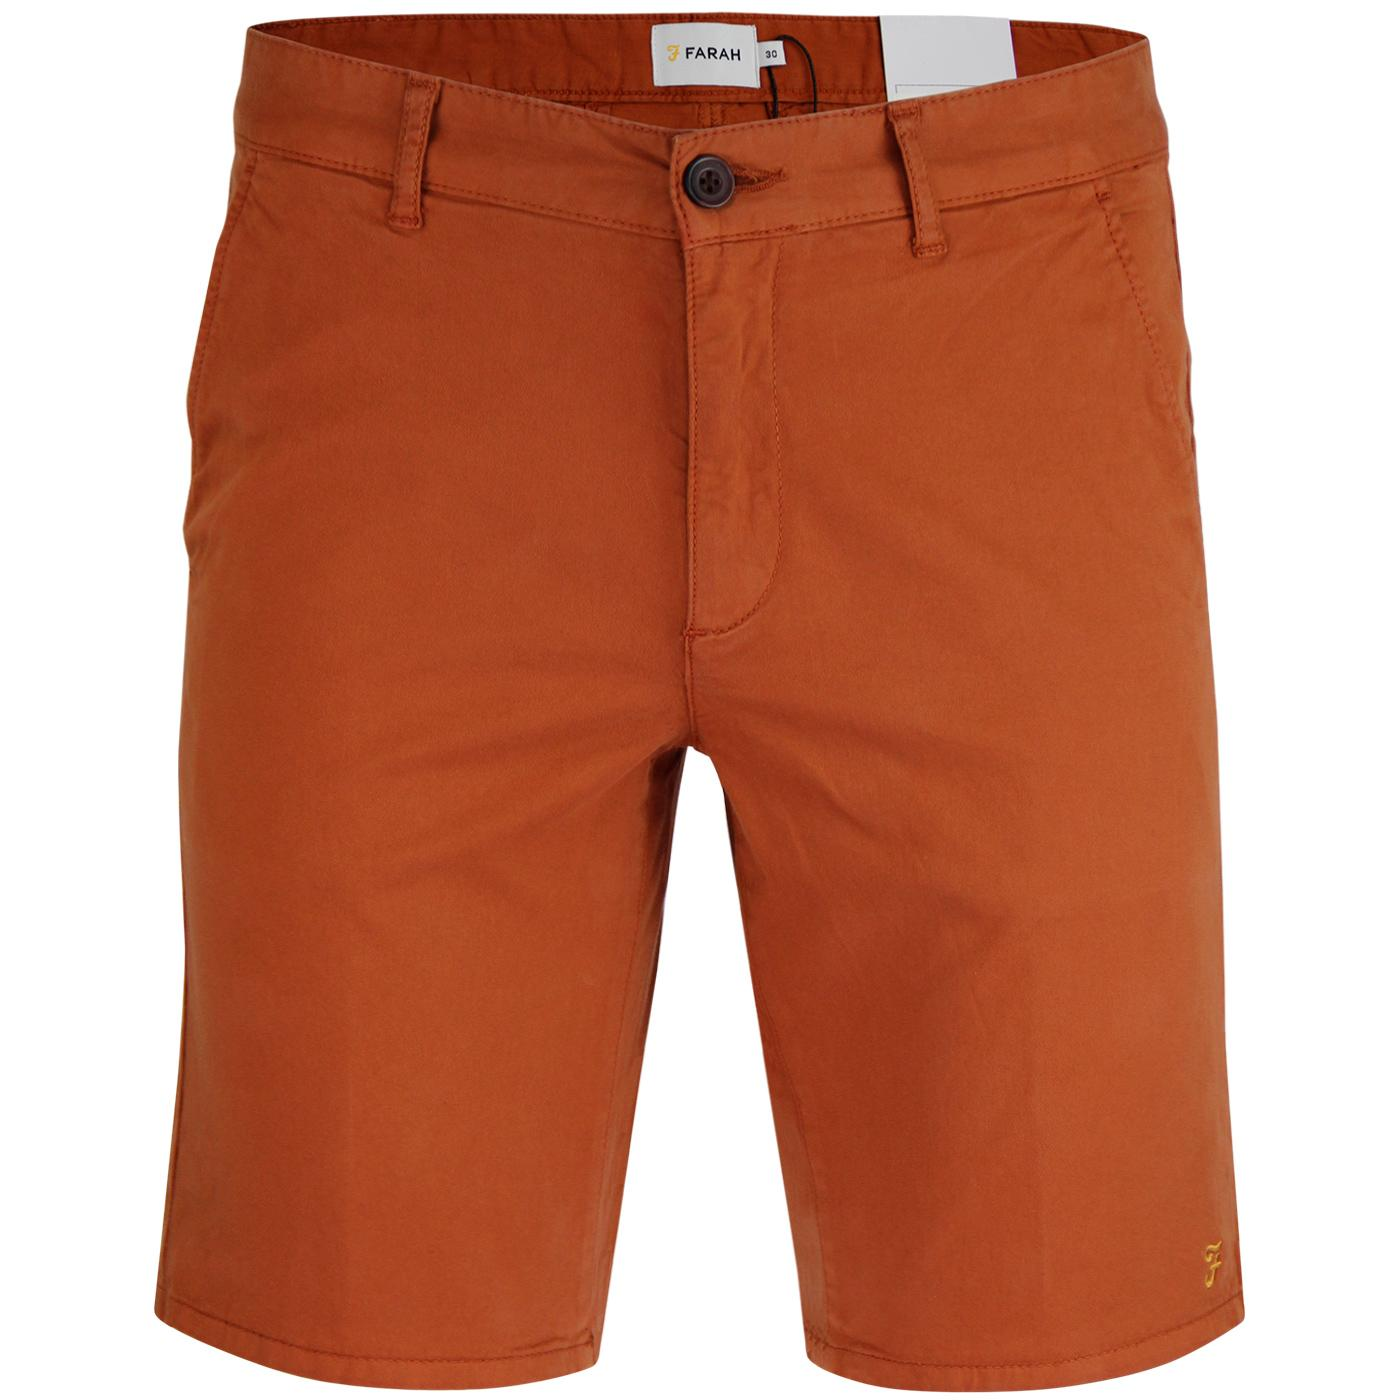 Hawk FARAH Retro Cotton Twill Chino Shorts (Gold)